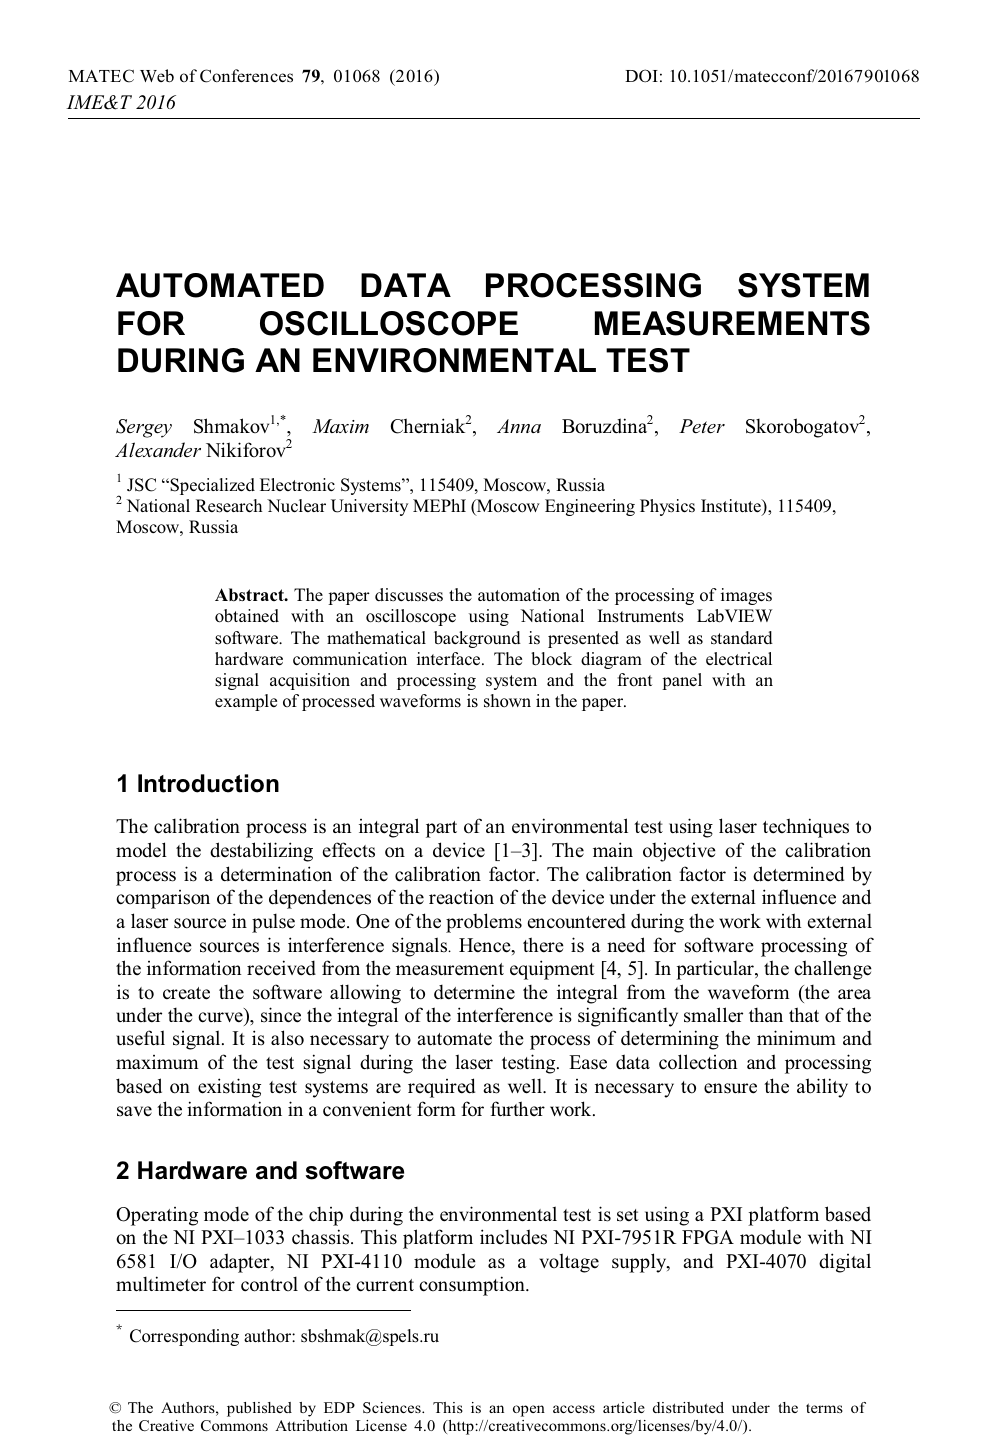 Automated Data Processing System for Oscilloscope Measurements